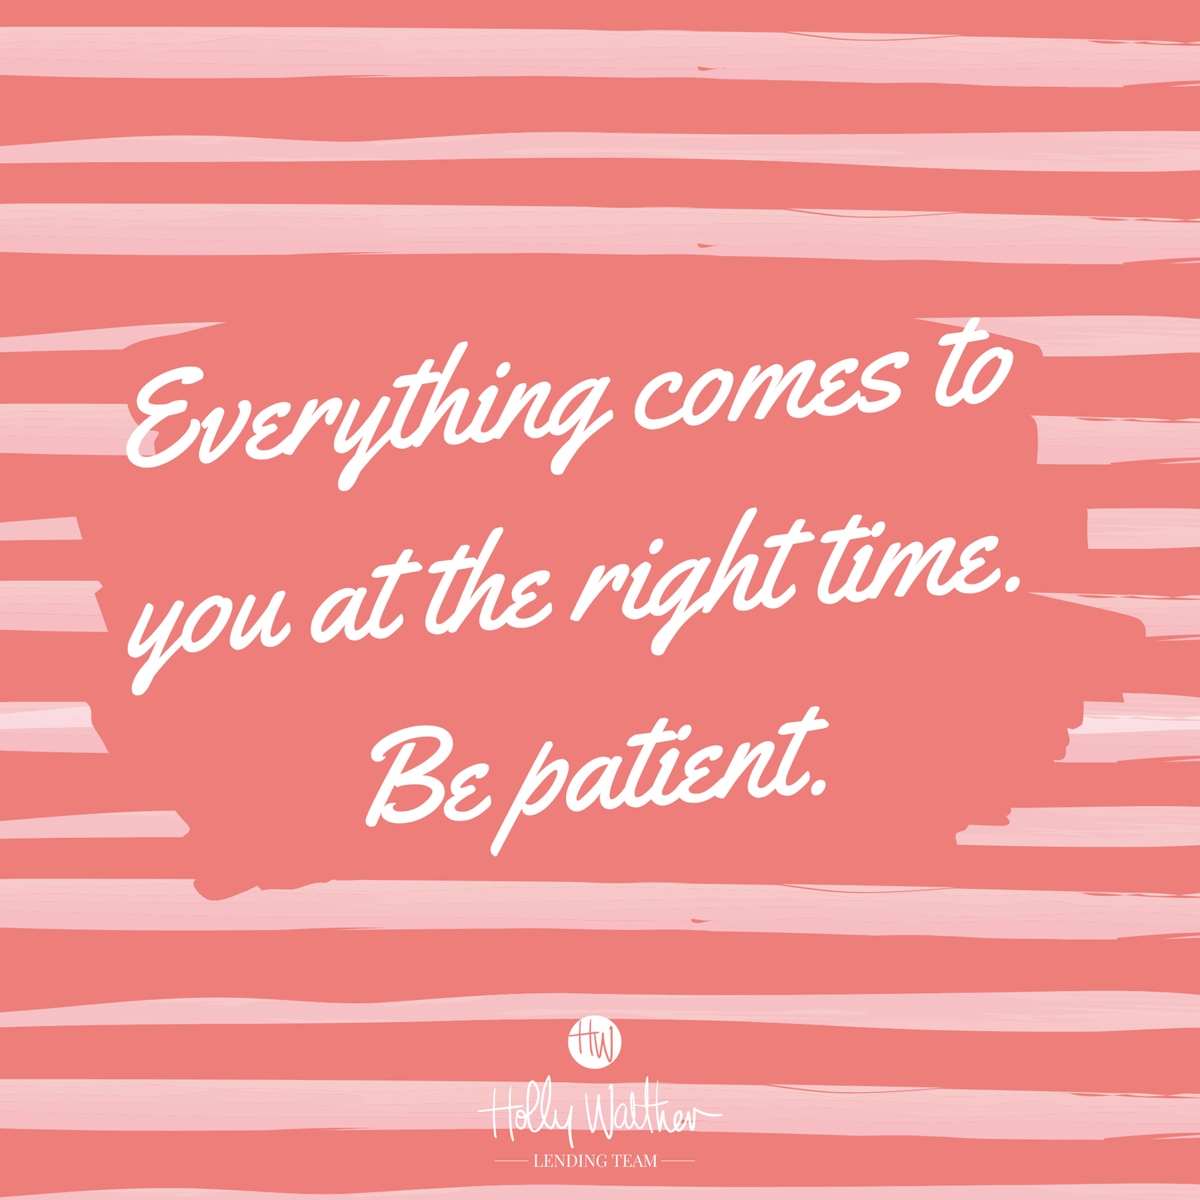 If you are waiting for something, be patient! It will come to you at just the right time.  #lender #realtor #quotestoliveby #quotes #bestoftheday #love #motivation #happy #loveyourself #inspirationalquotes #quoteoftheday #quote #quotesaboutlife #bossbabe #bosslady #bosslife